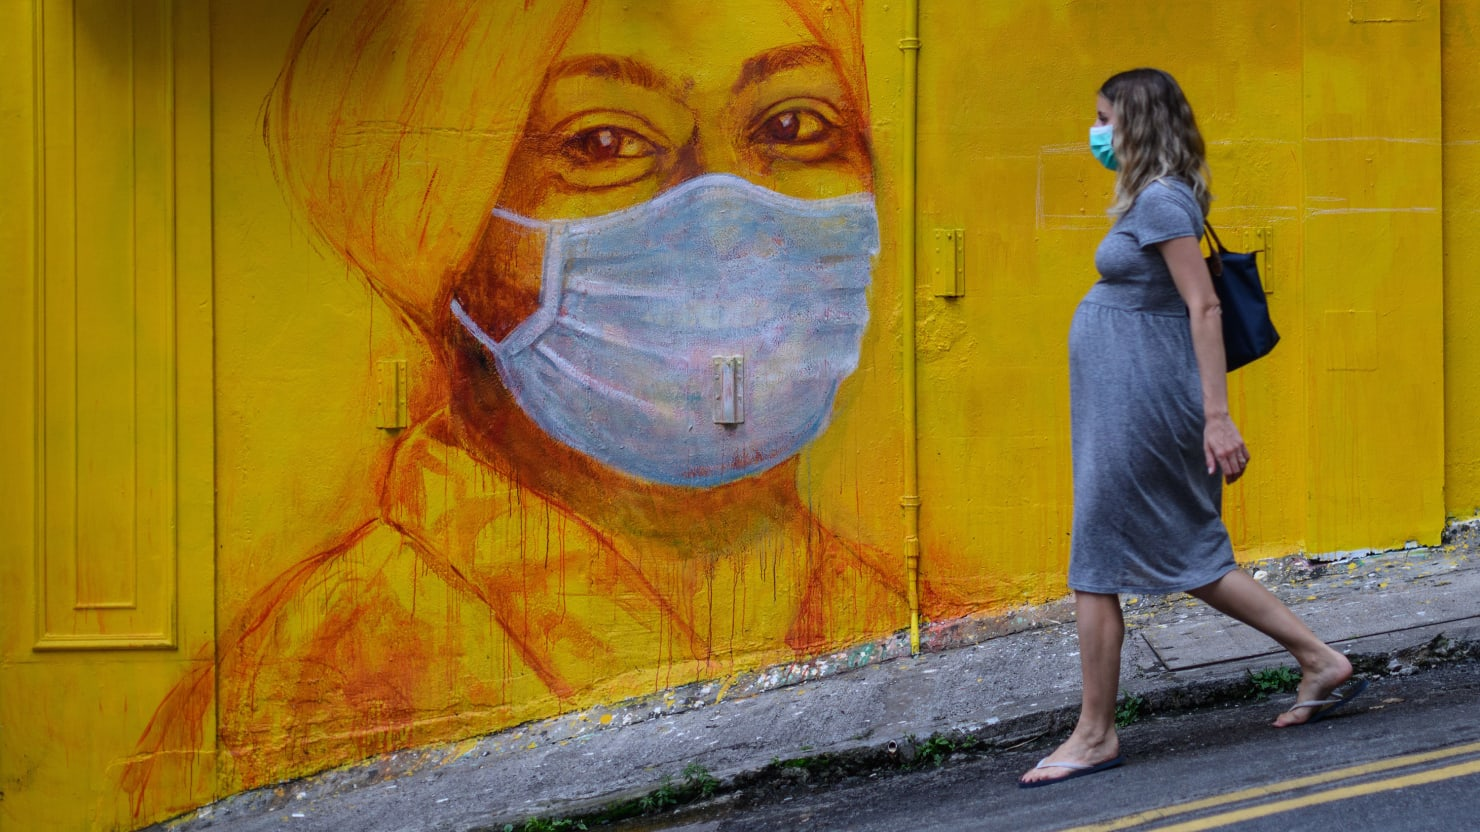 No, Face Coverings Don't Cause Carbon Dioxide Poisoning. Five Mask Myths Debunked.